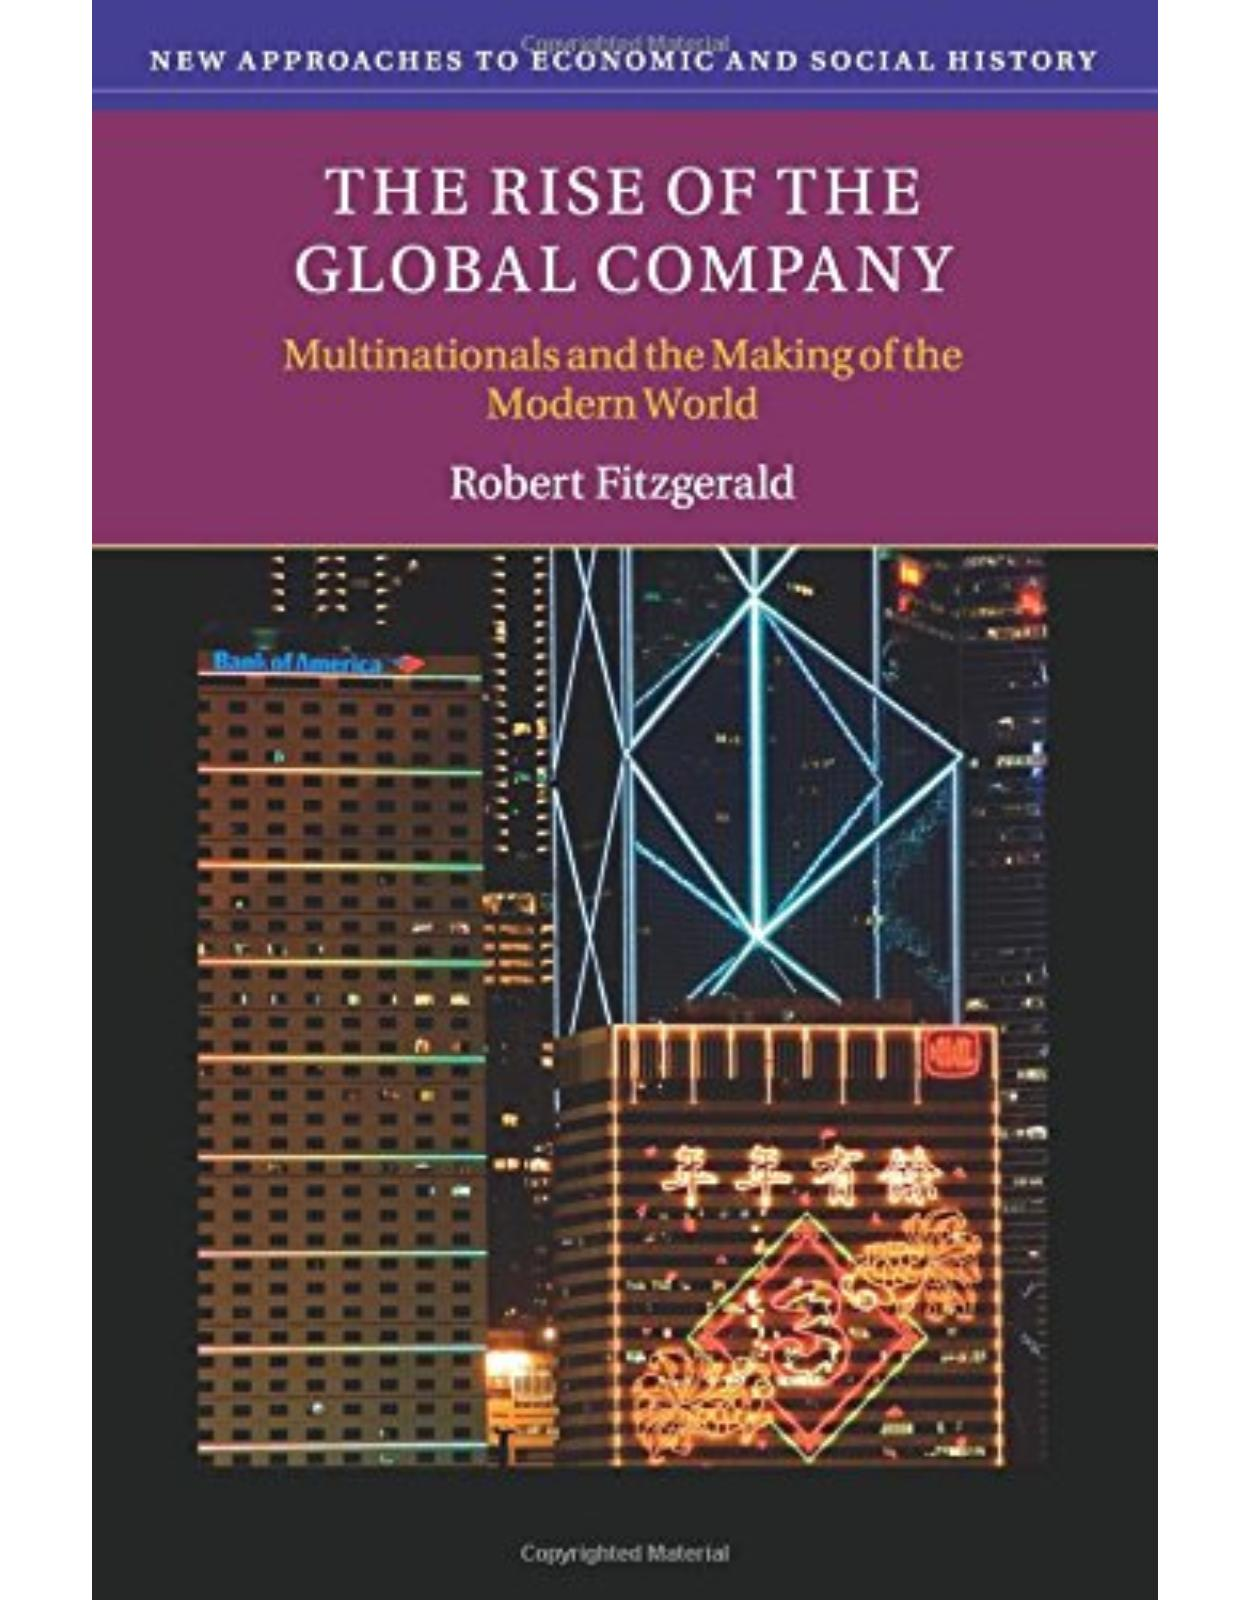 The Rise of the Global Company: Multinationals and the Making of the Modern World (New Approaches to Economic and Social History)